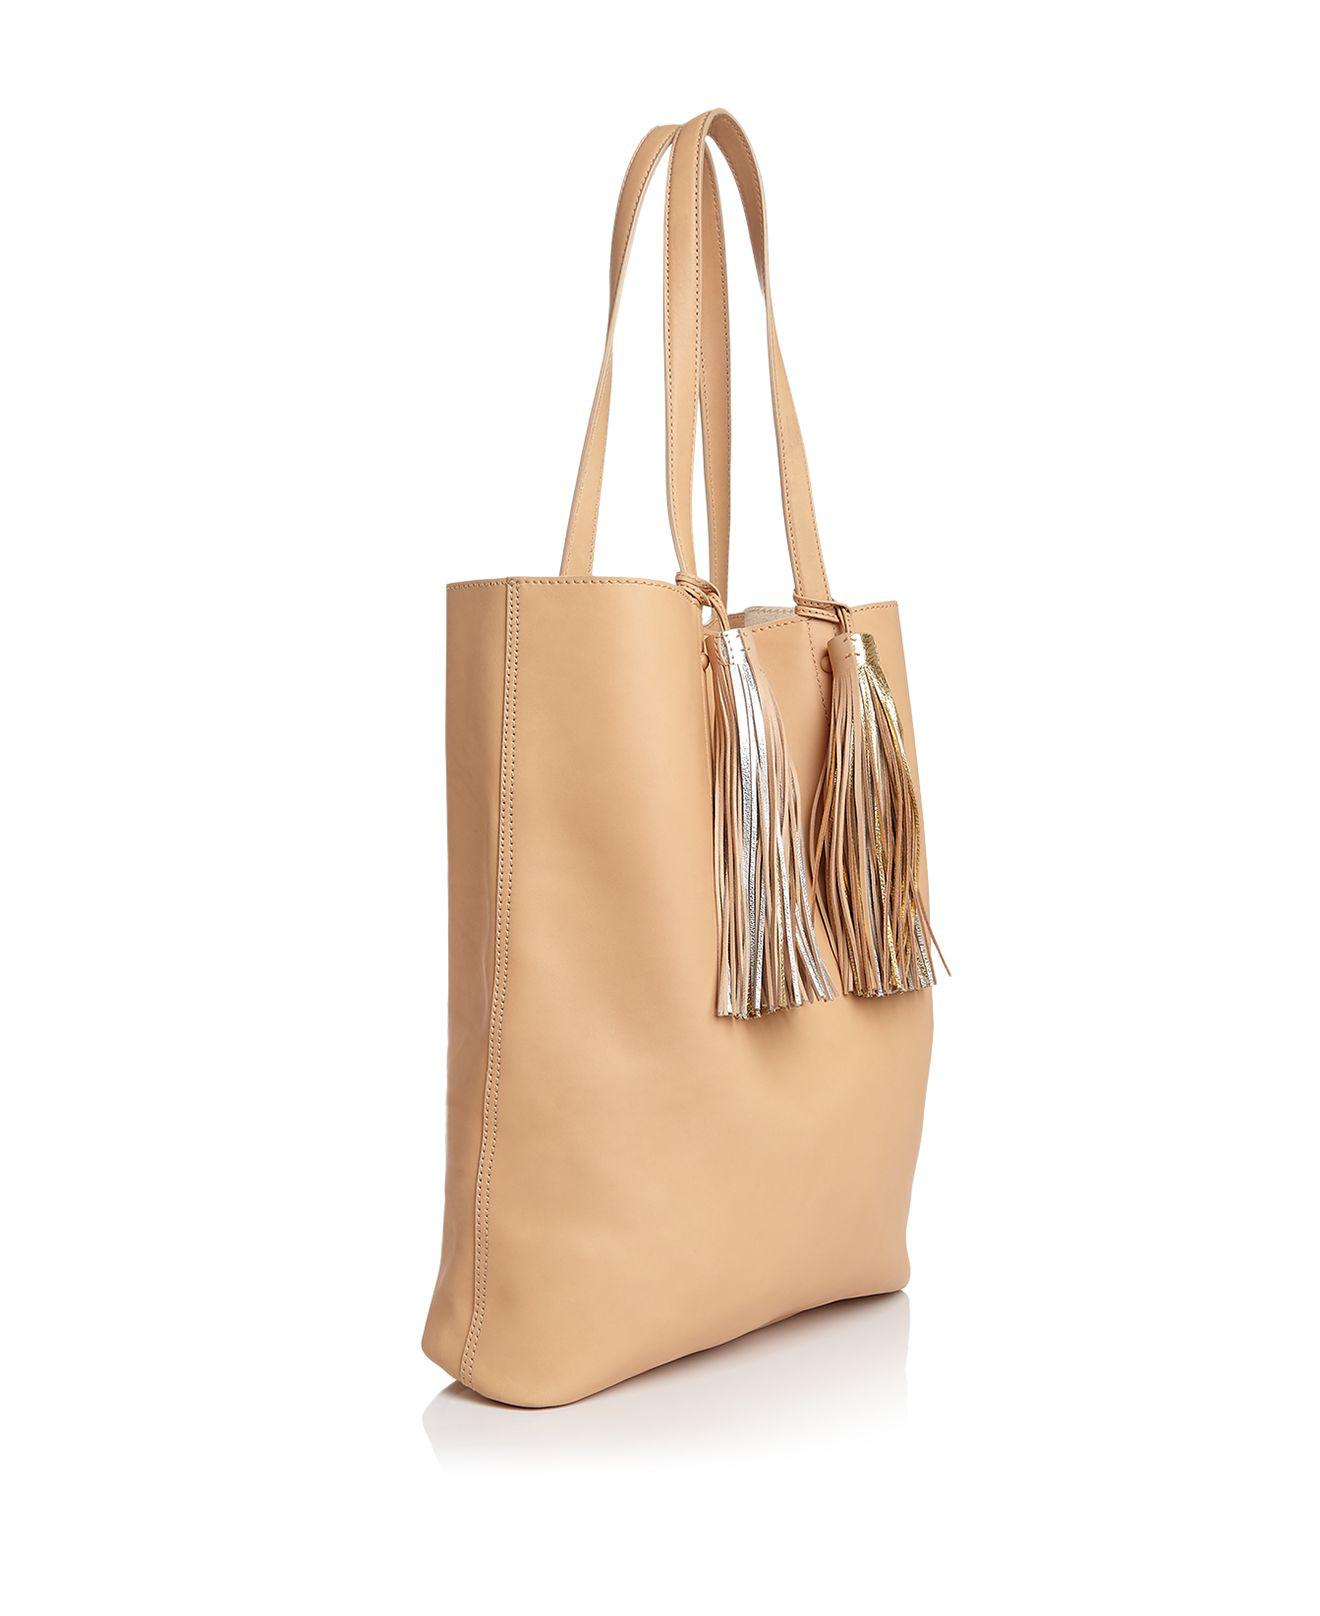 Loeffler Randall Leather Cruise Metallic Tassel Tote